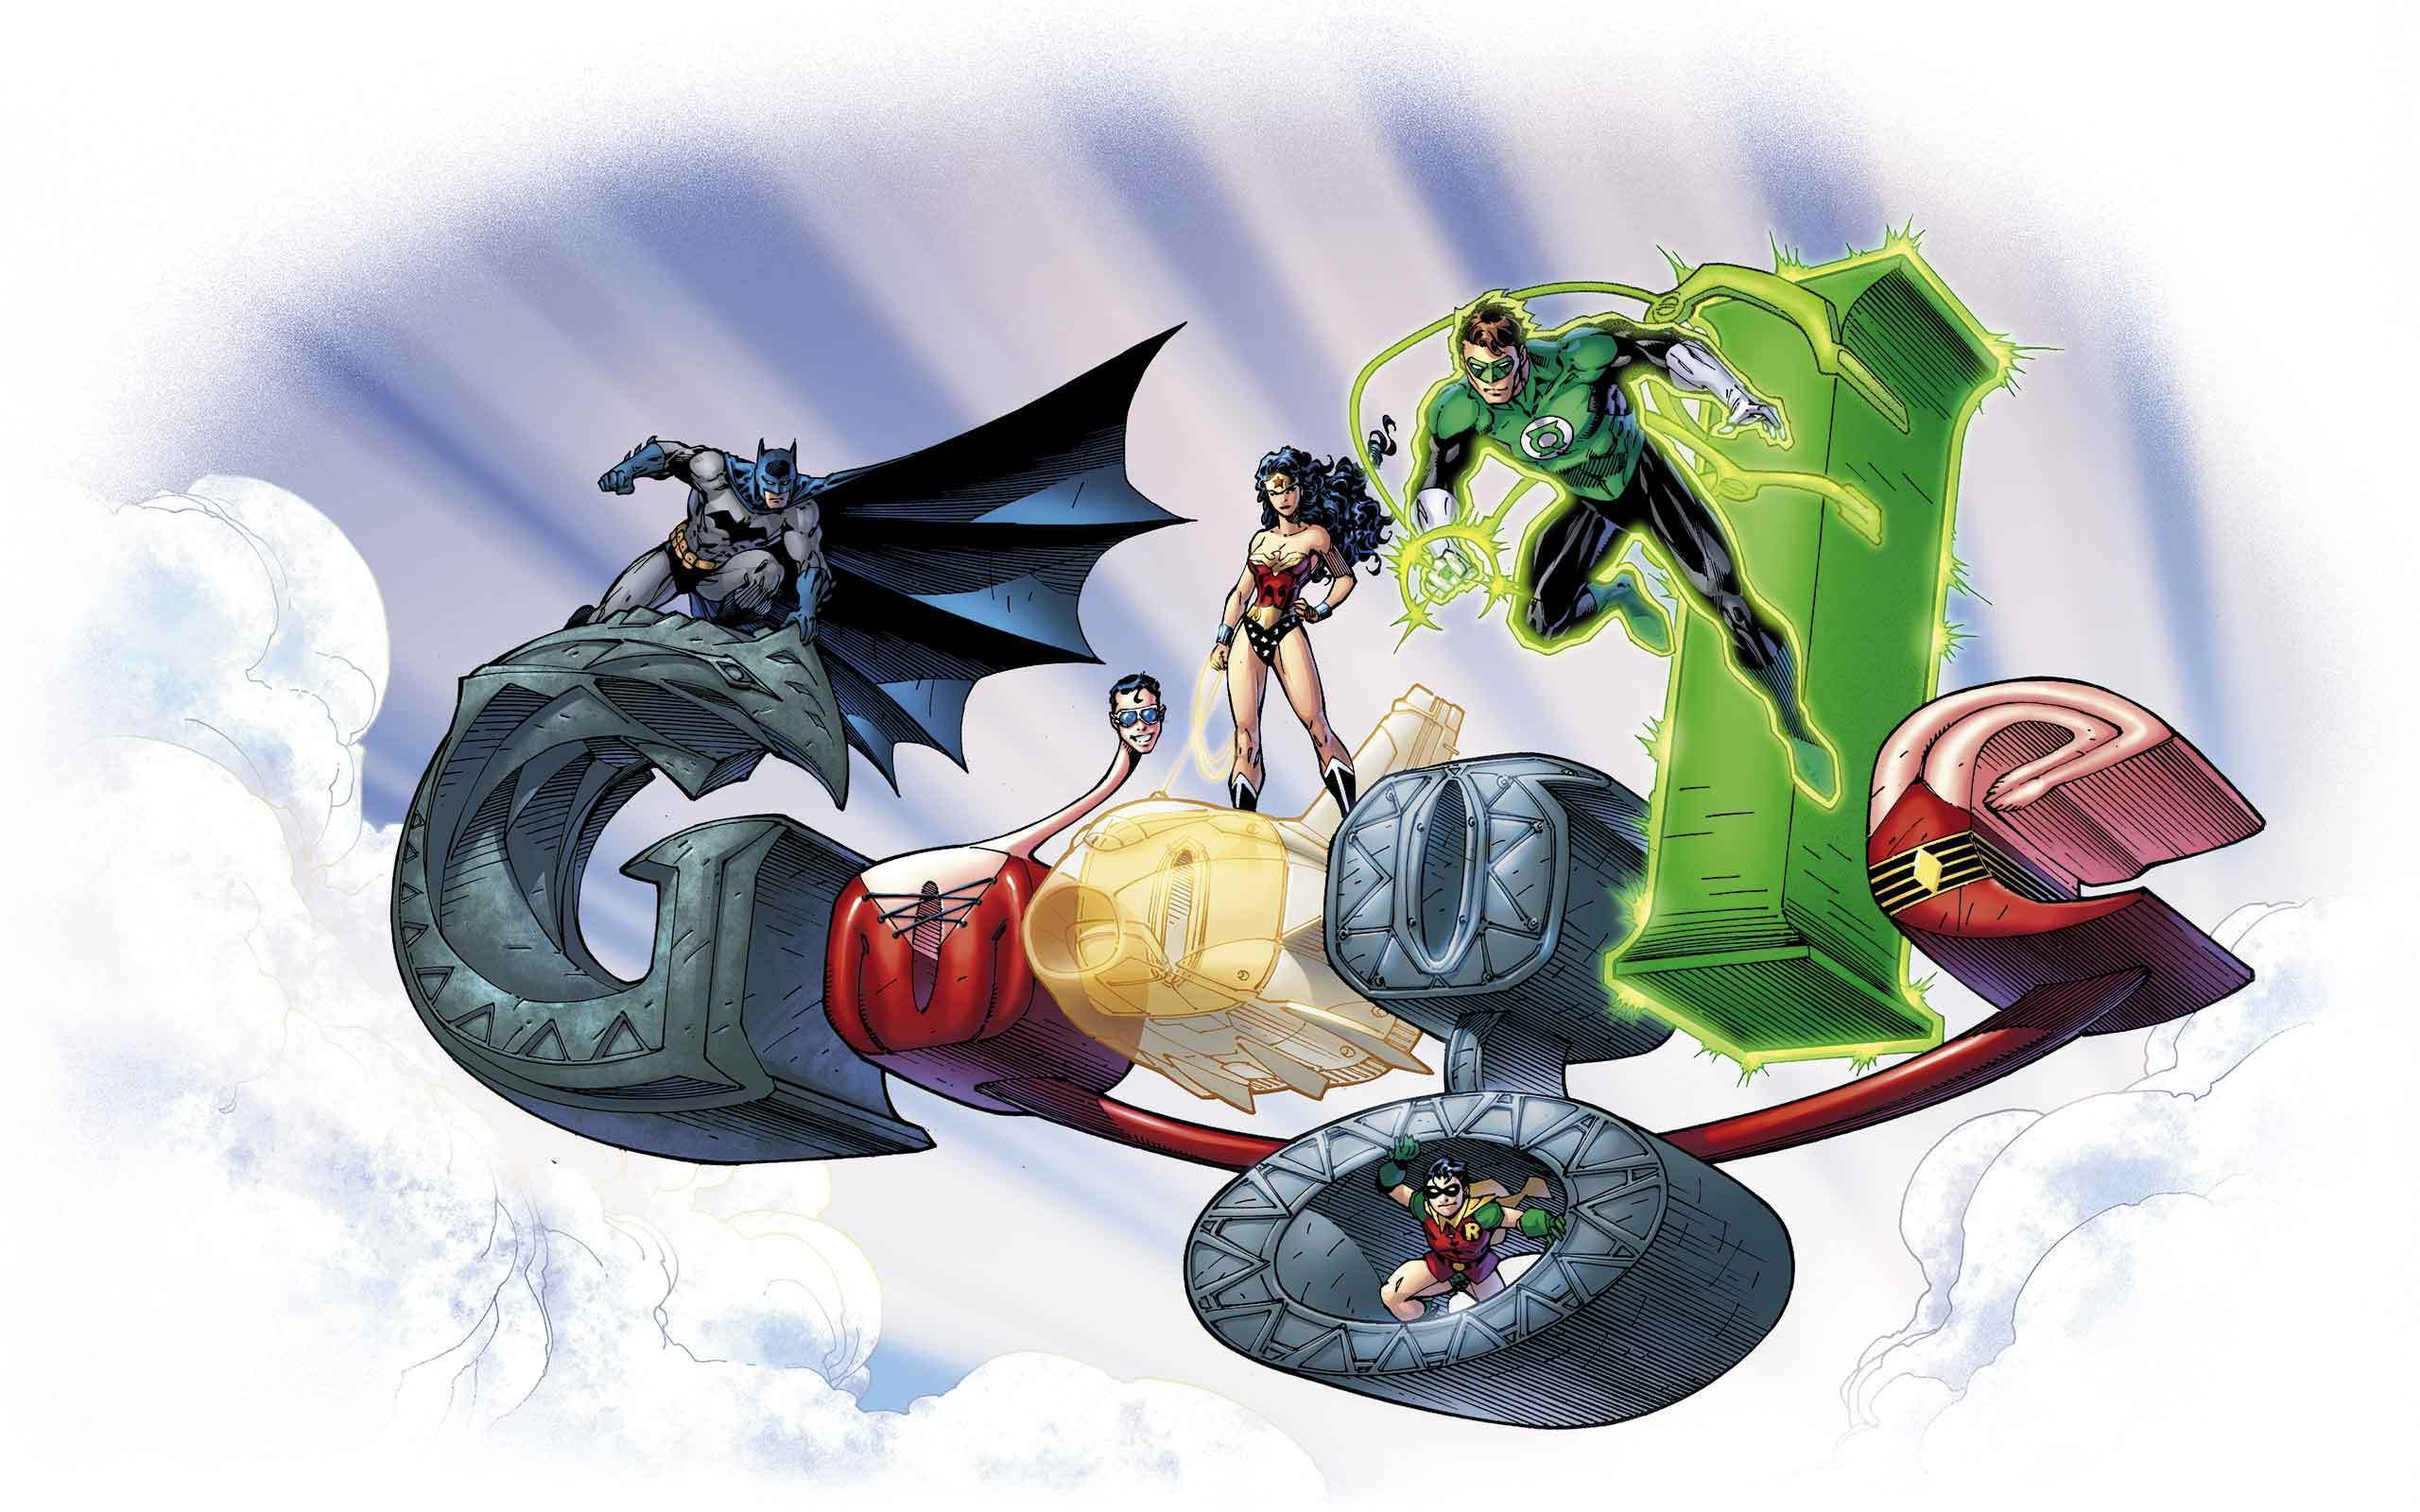 Google homepage themes gallery - Justice League Justice League Wallpaper 14196685 Fanpop